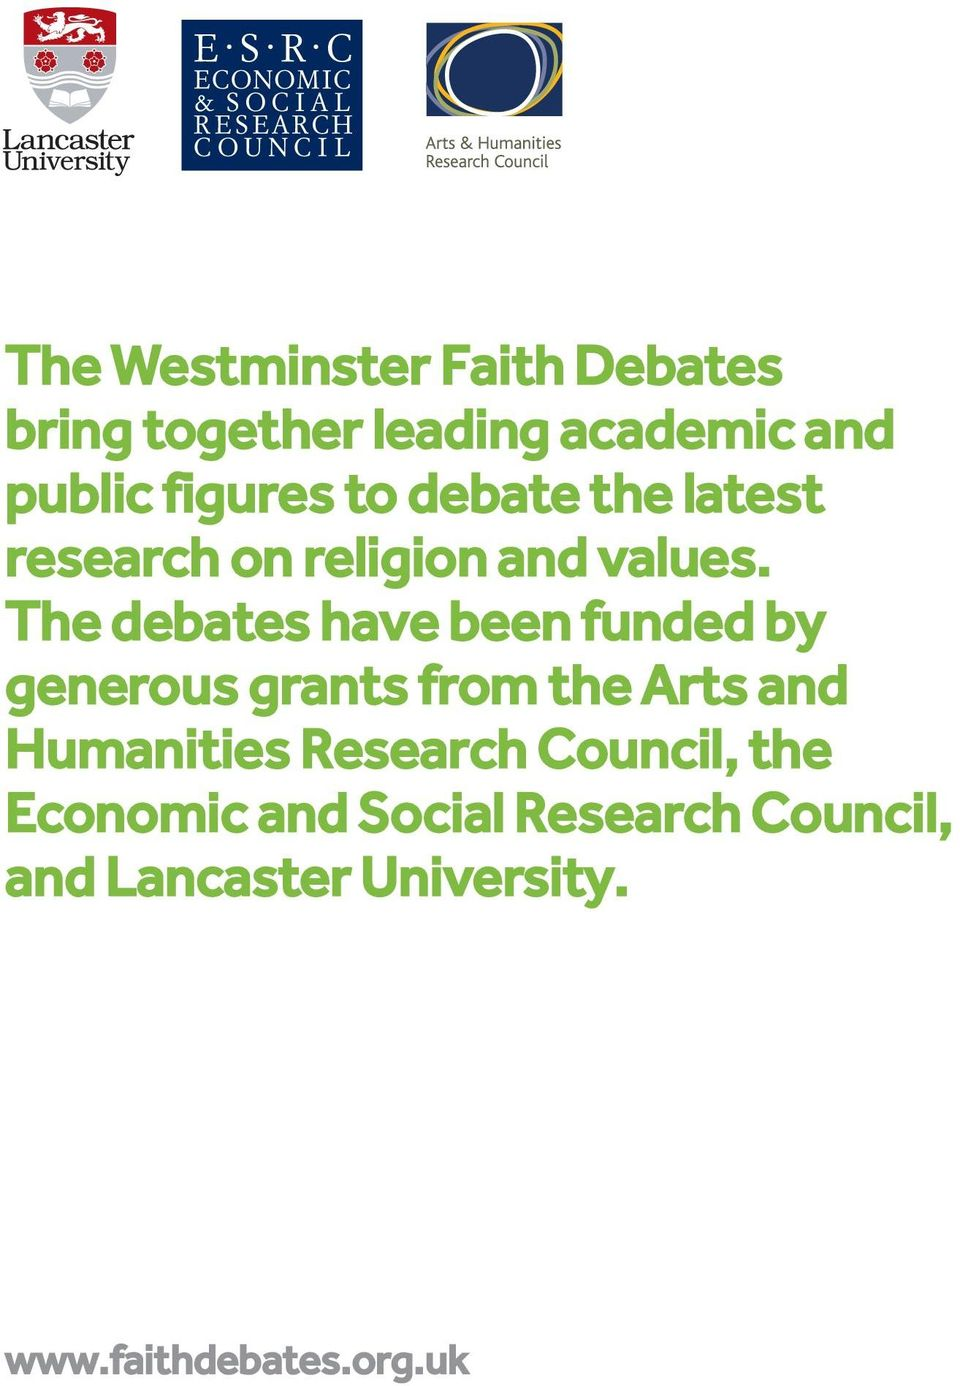 The debates have been funded by generous grants from the Arts and Humanities